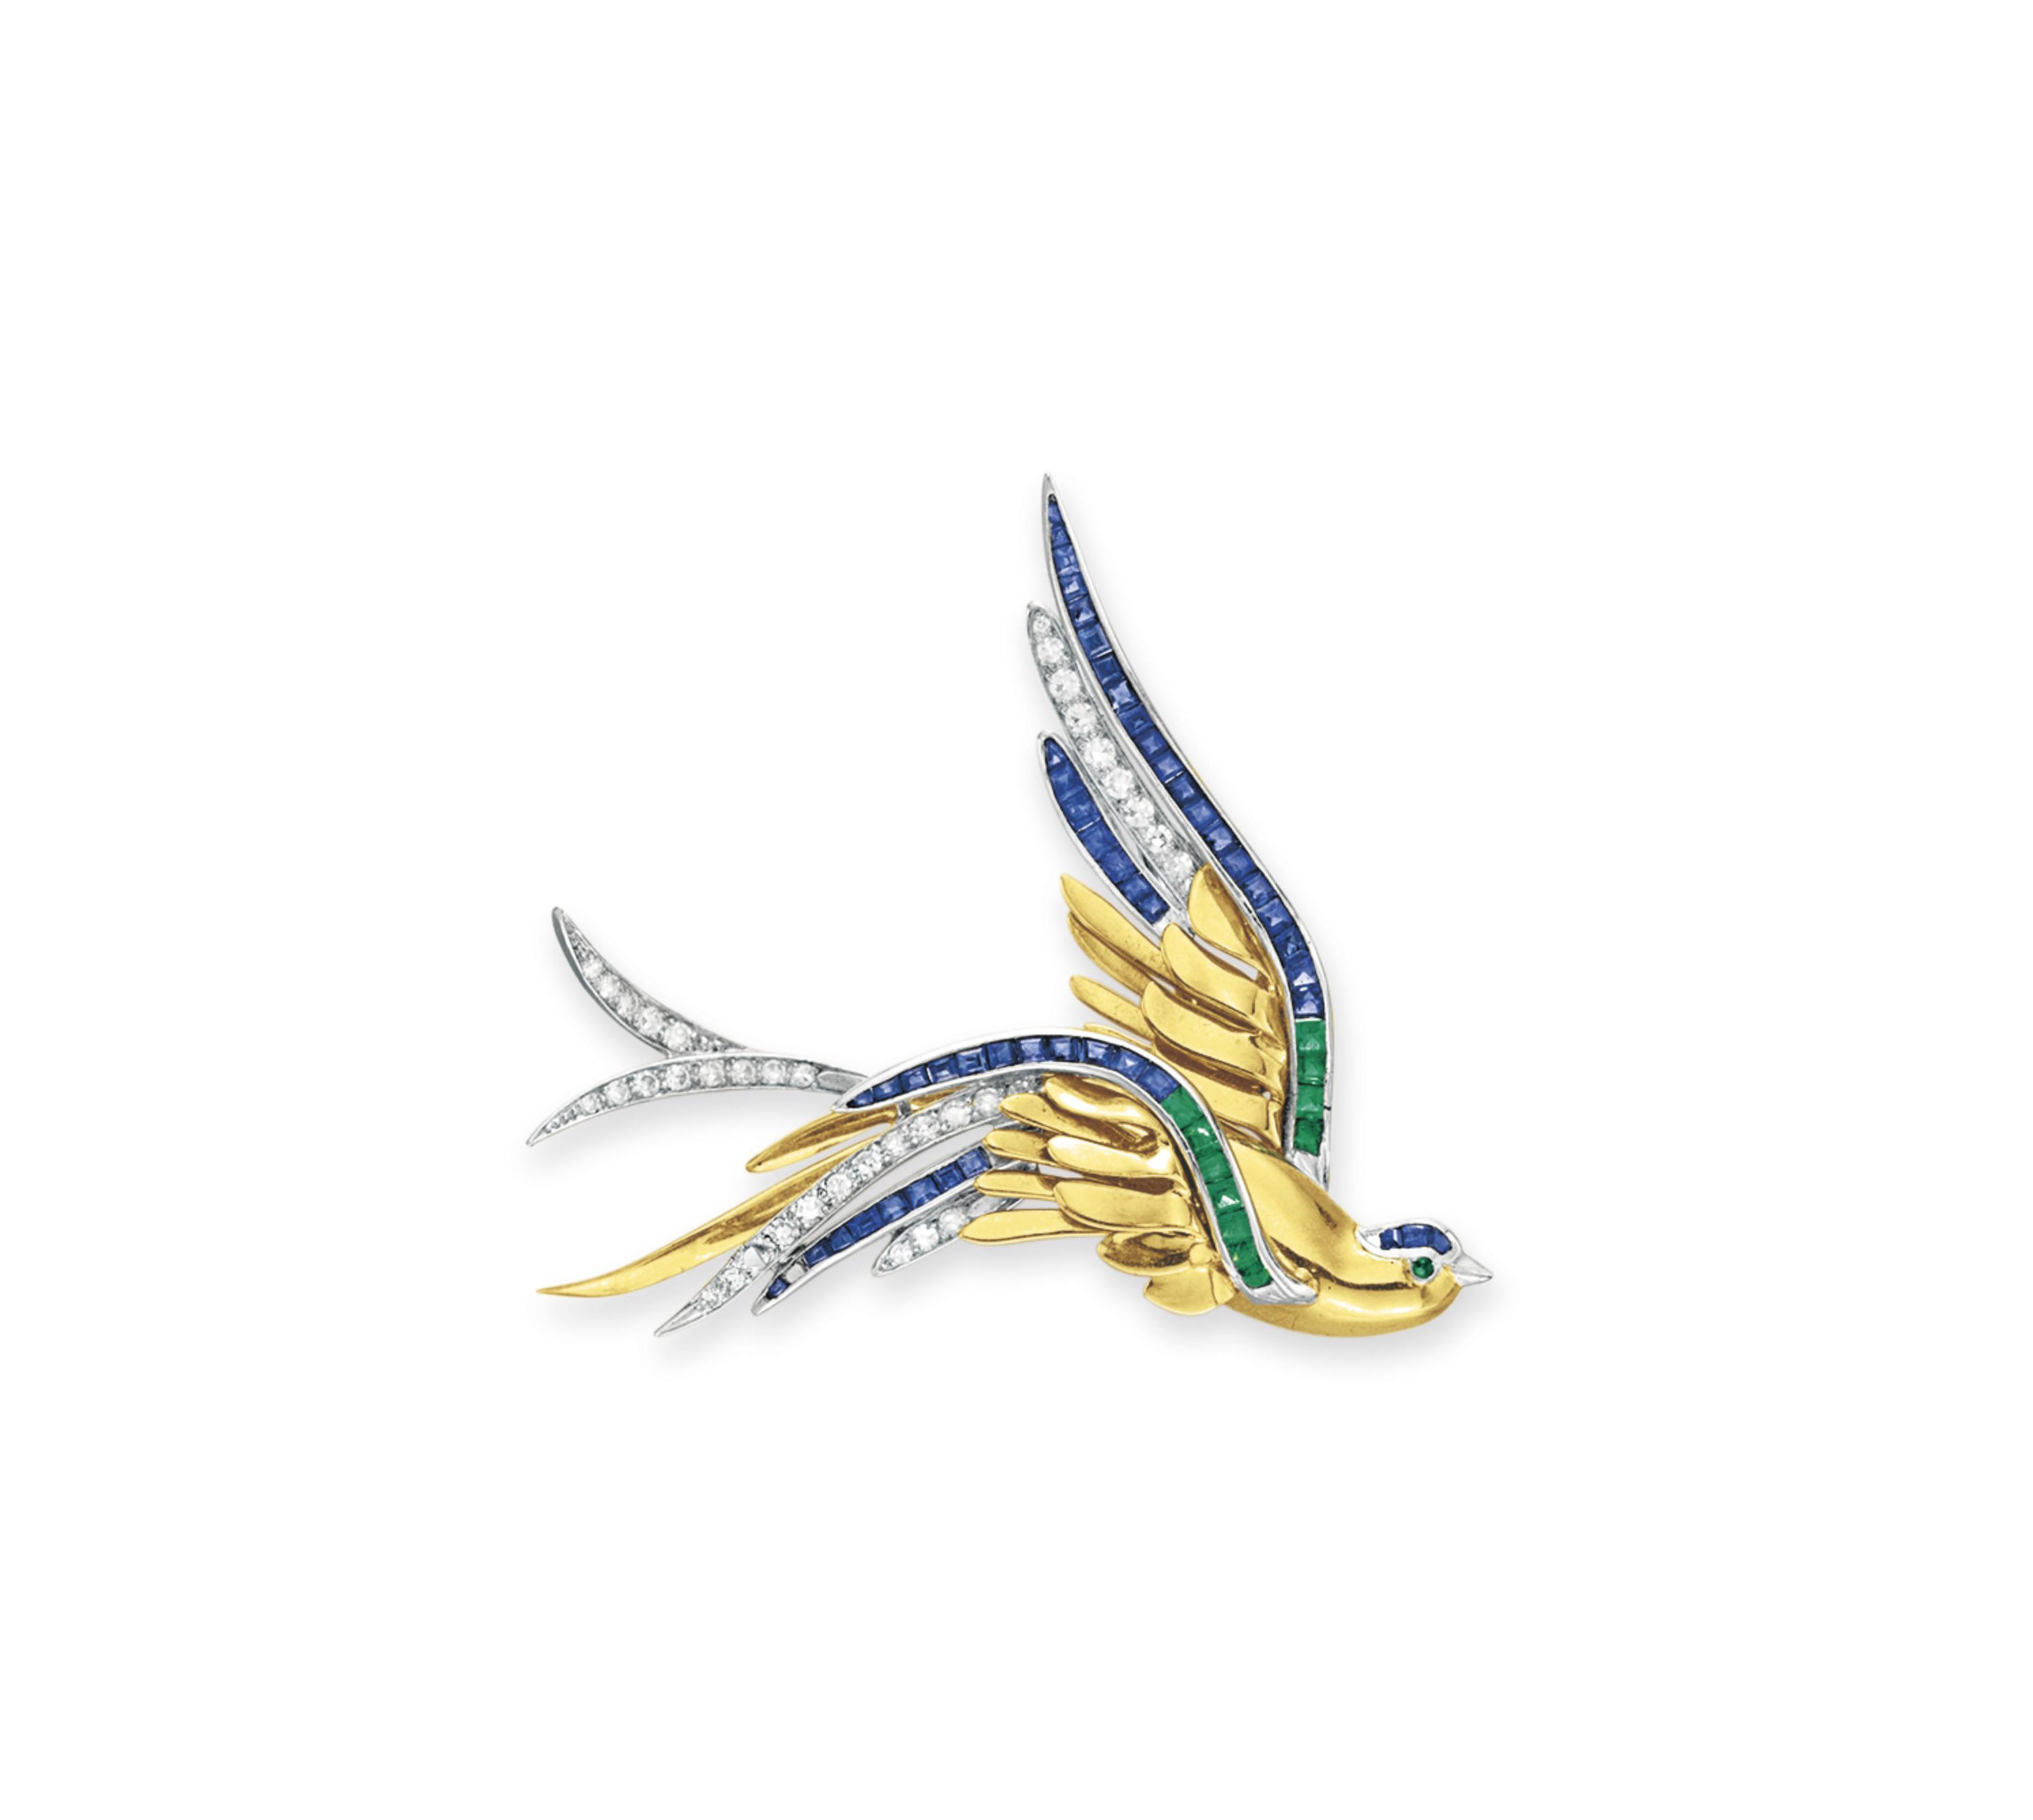 A DIAMOND, GEM-SET AND GOLD BIRD BROOCH, BY BAILEY BANKS & BIDDLE